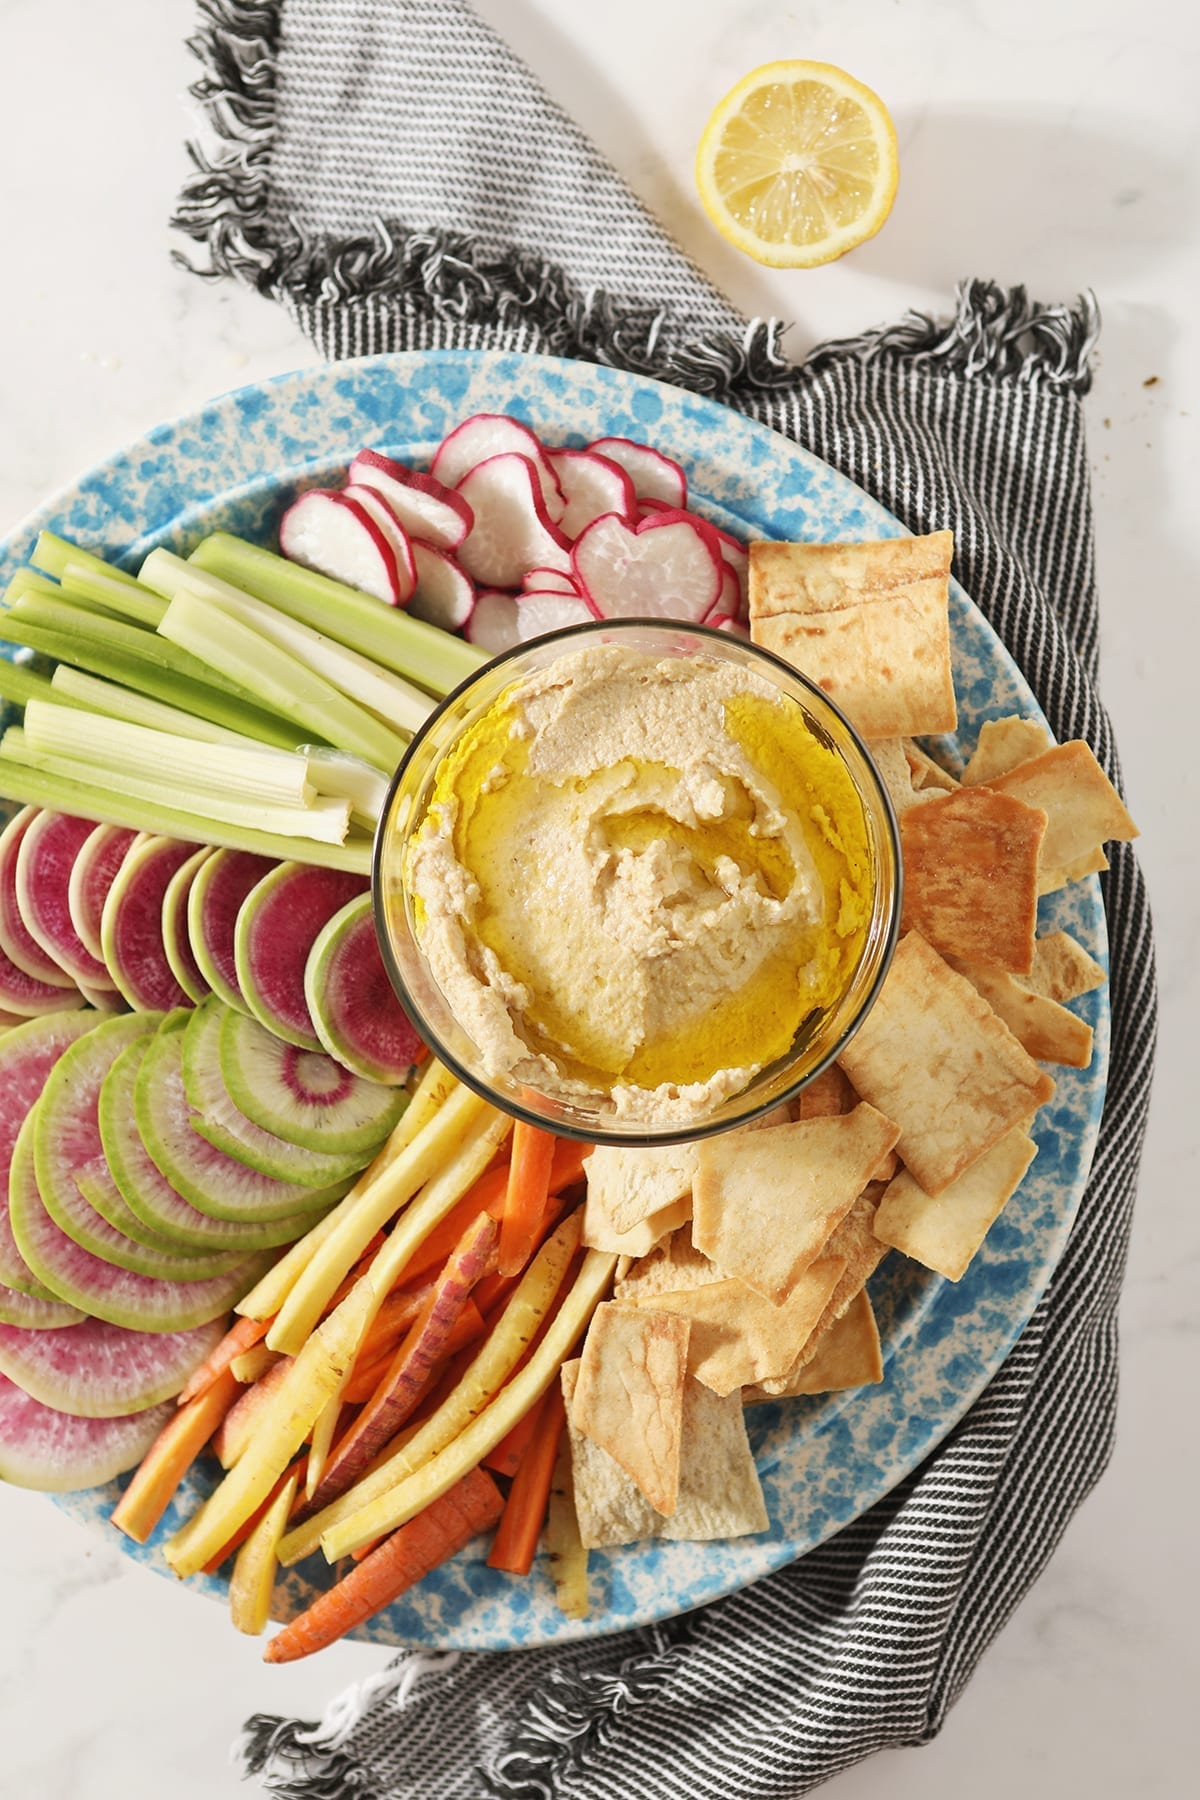 Garlic Hummus, drizzled with olive oil, sits in a glass container surrounded by radish, celery and carrot slices and pita chips